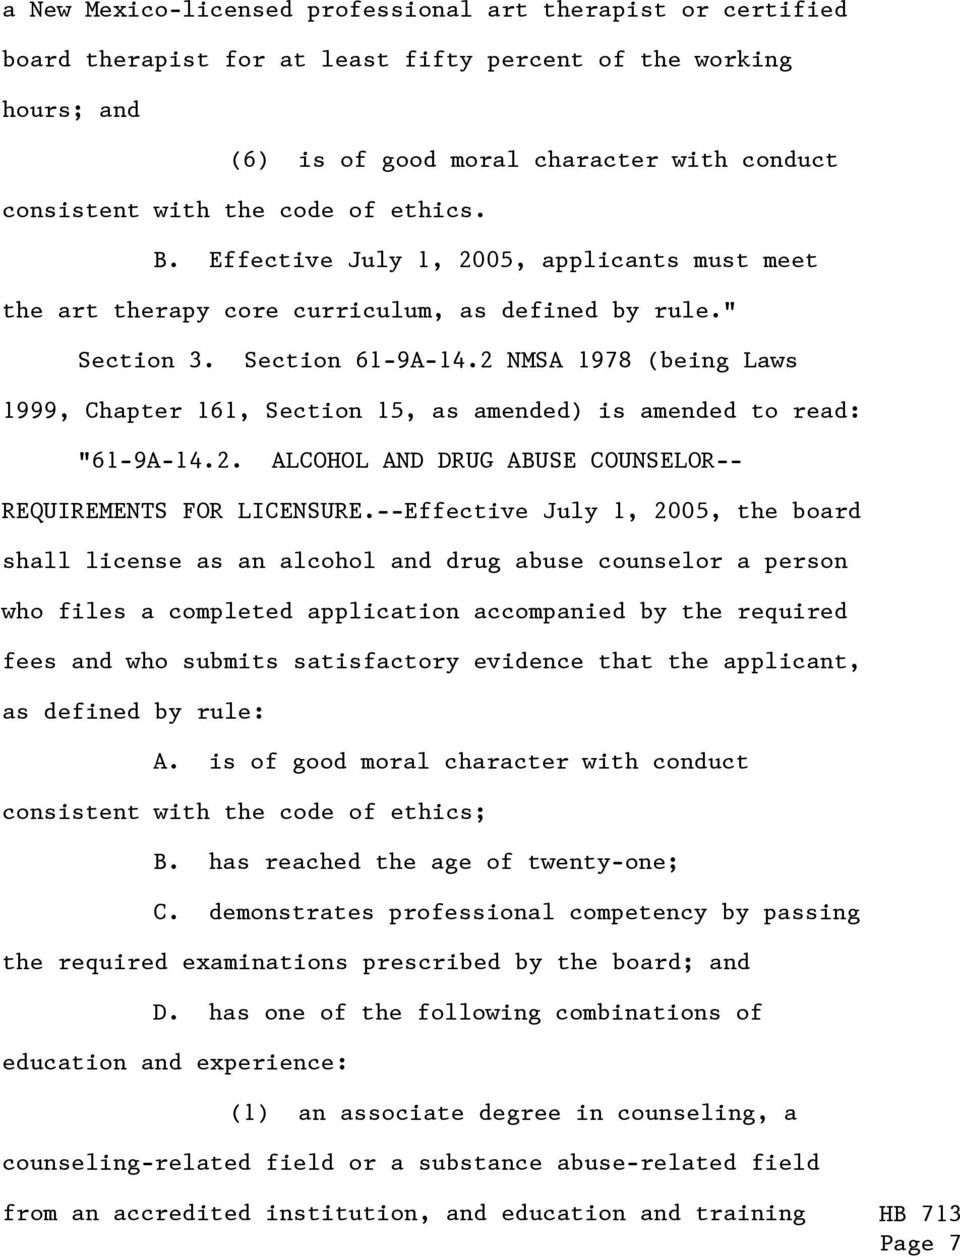 "2 NMSA 1978 (being Laws 1999, Chapter 161, Section 15, as amended) is amended to read: ""61-9A-14.2. ALCOHOL AND DRUG ABUSE COUNSELOR-- REQUIREMENTS FOR LICENSURE."